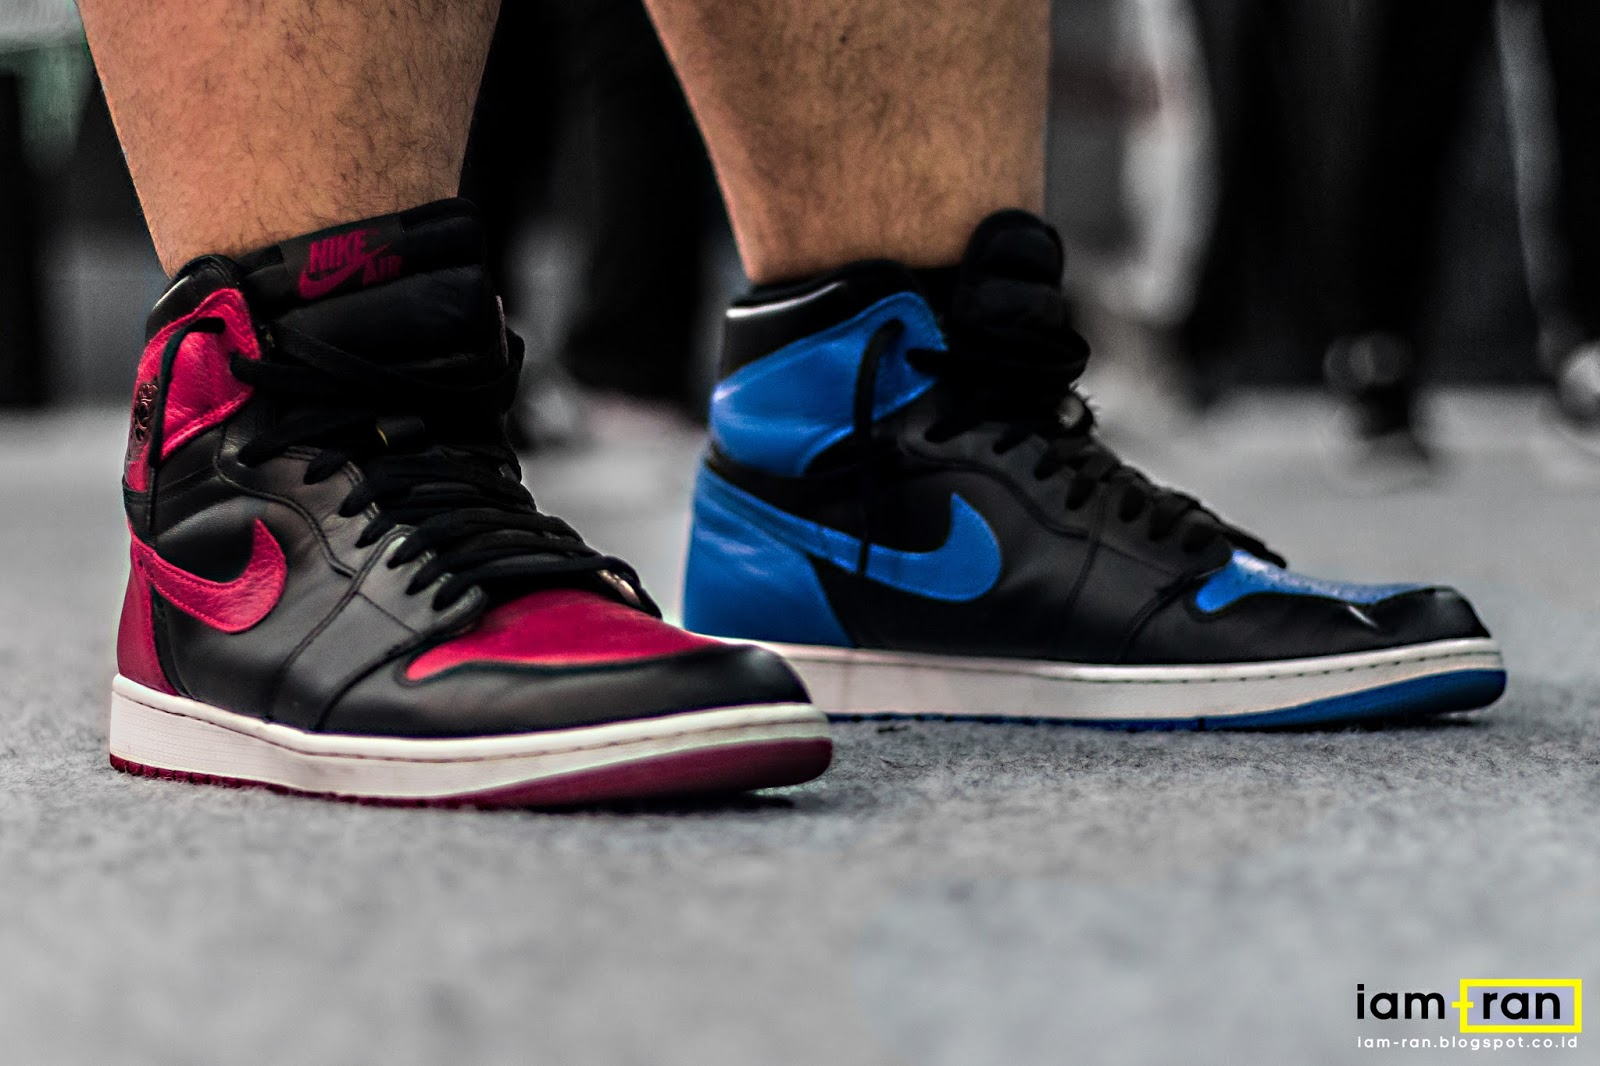 6809d44b15f IAM-RAN  ON FEET   Hilman - Nike Air Jordan 1